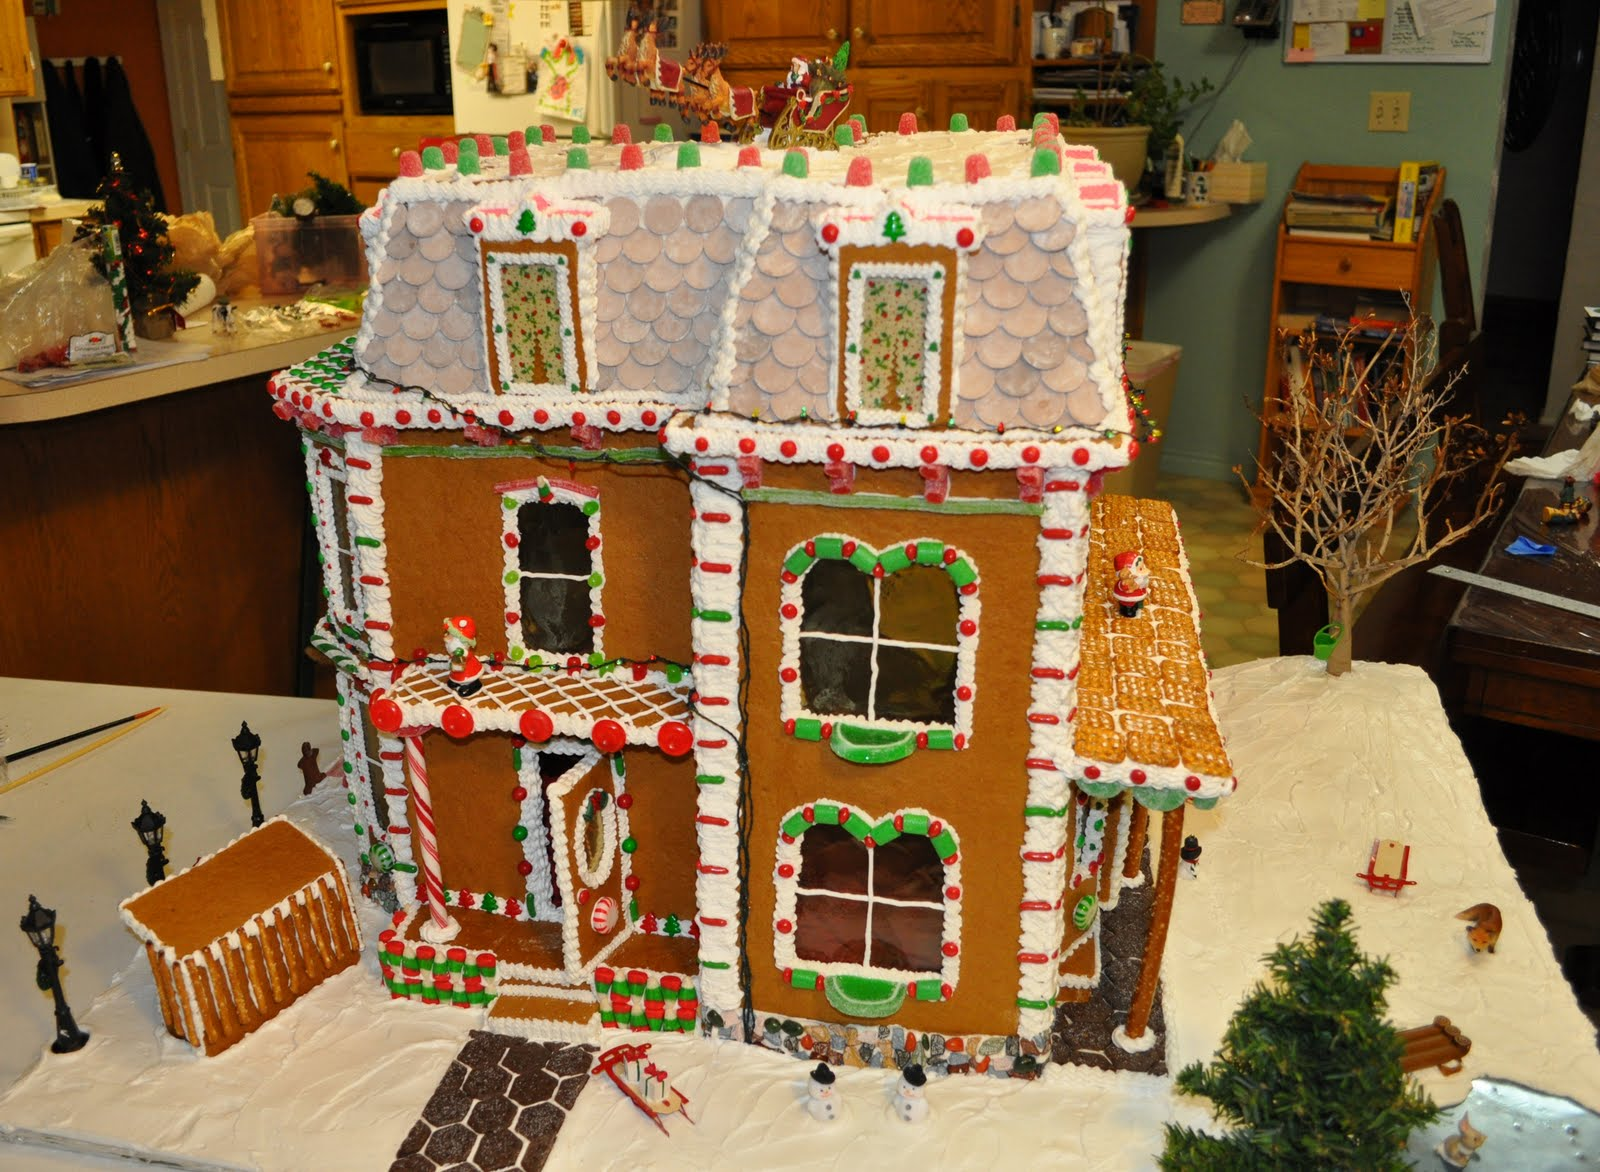 David & Gwen Schwieder Family: The gingerbread house is finished!